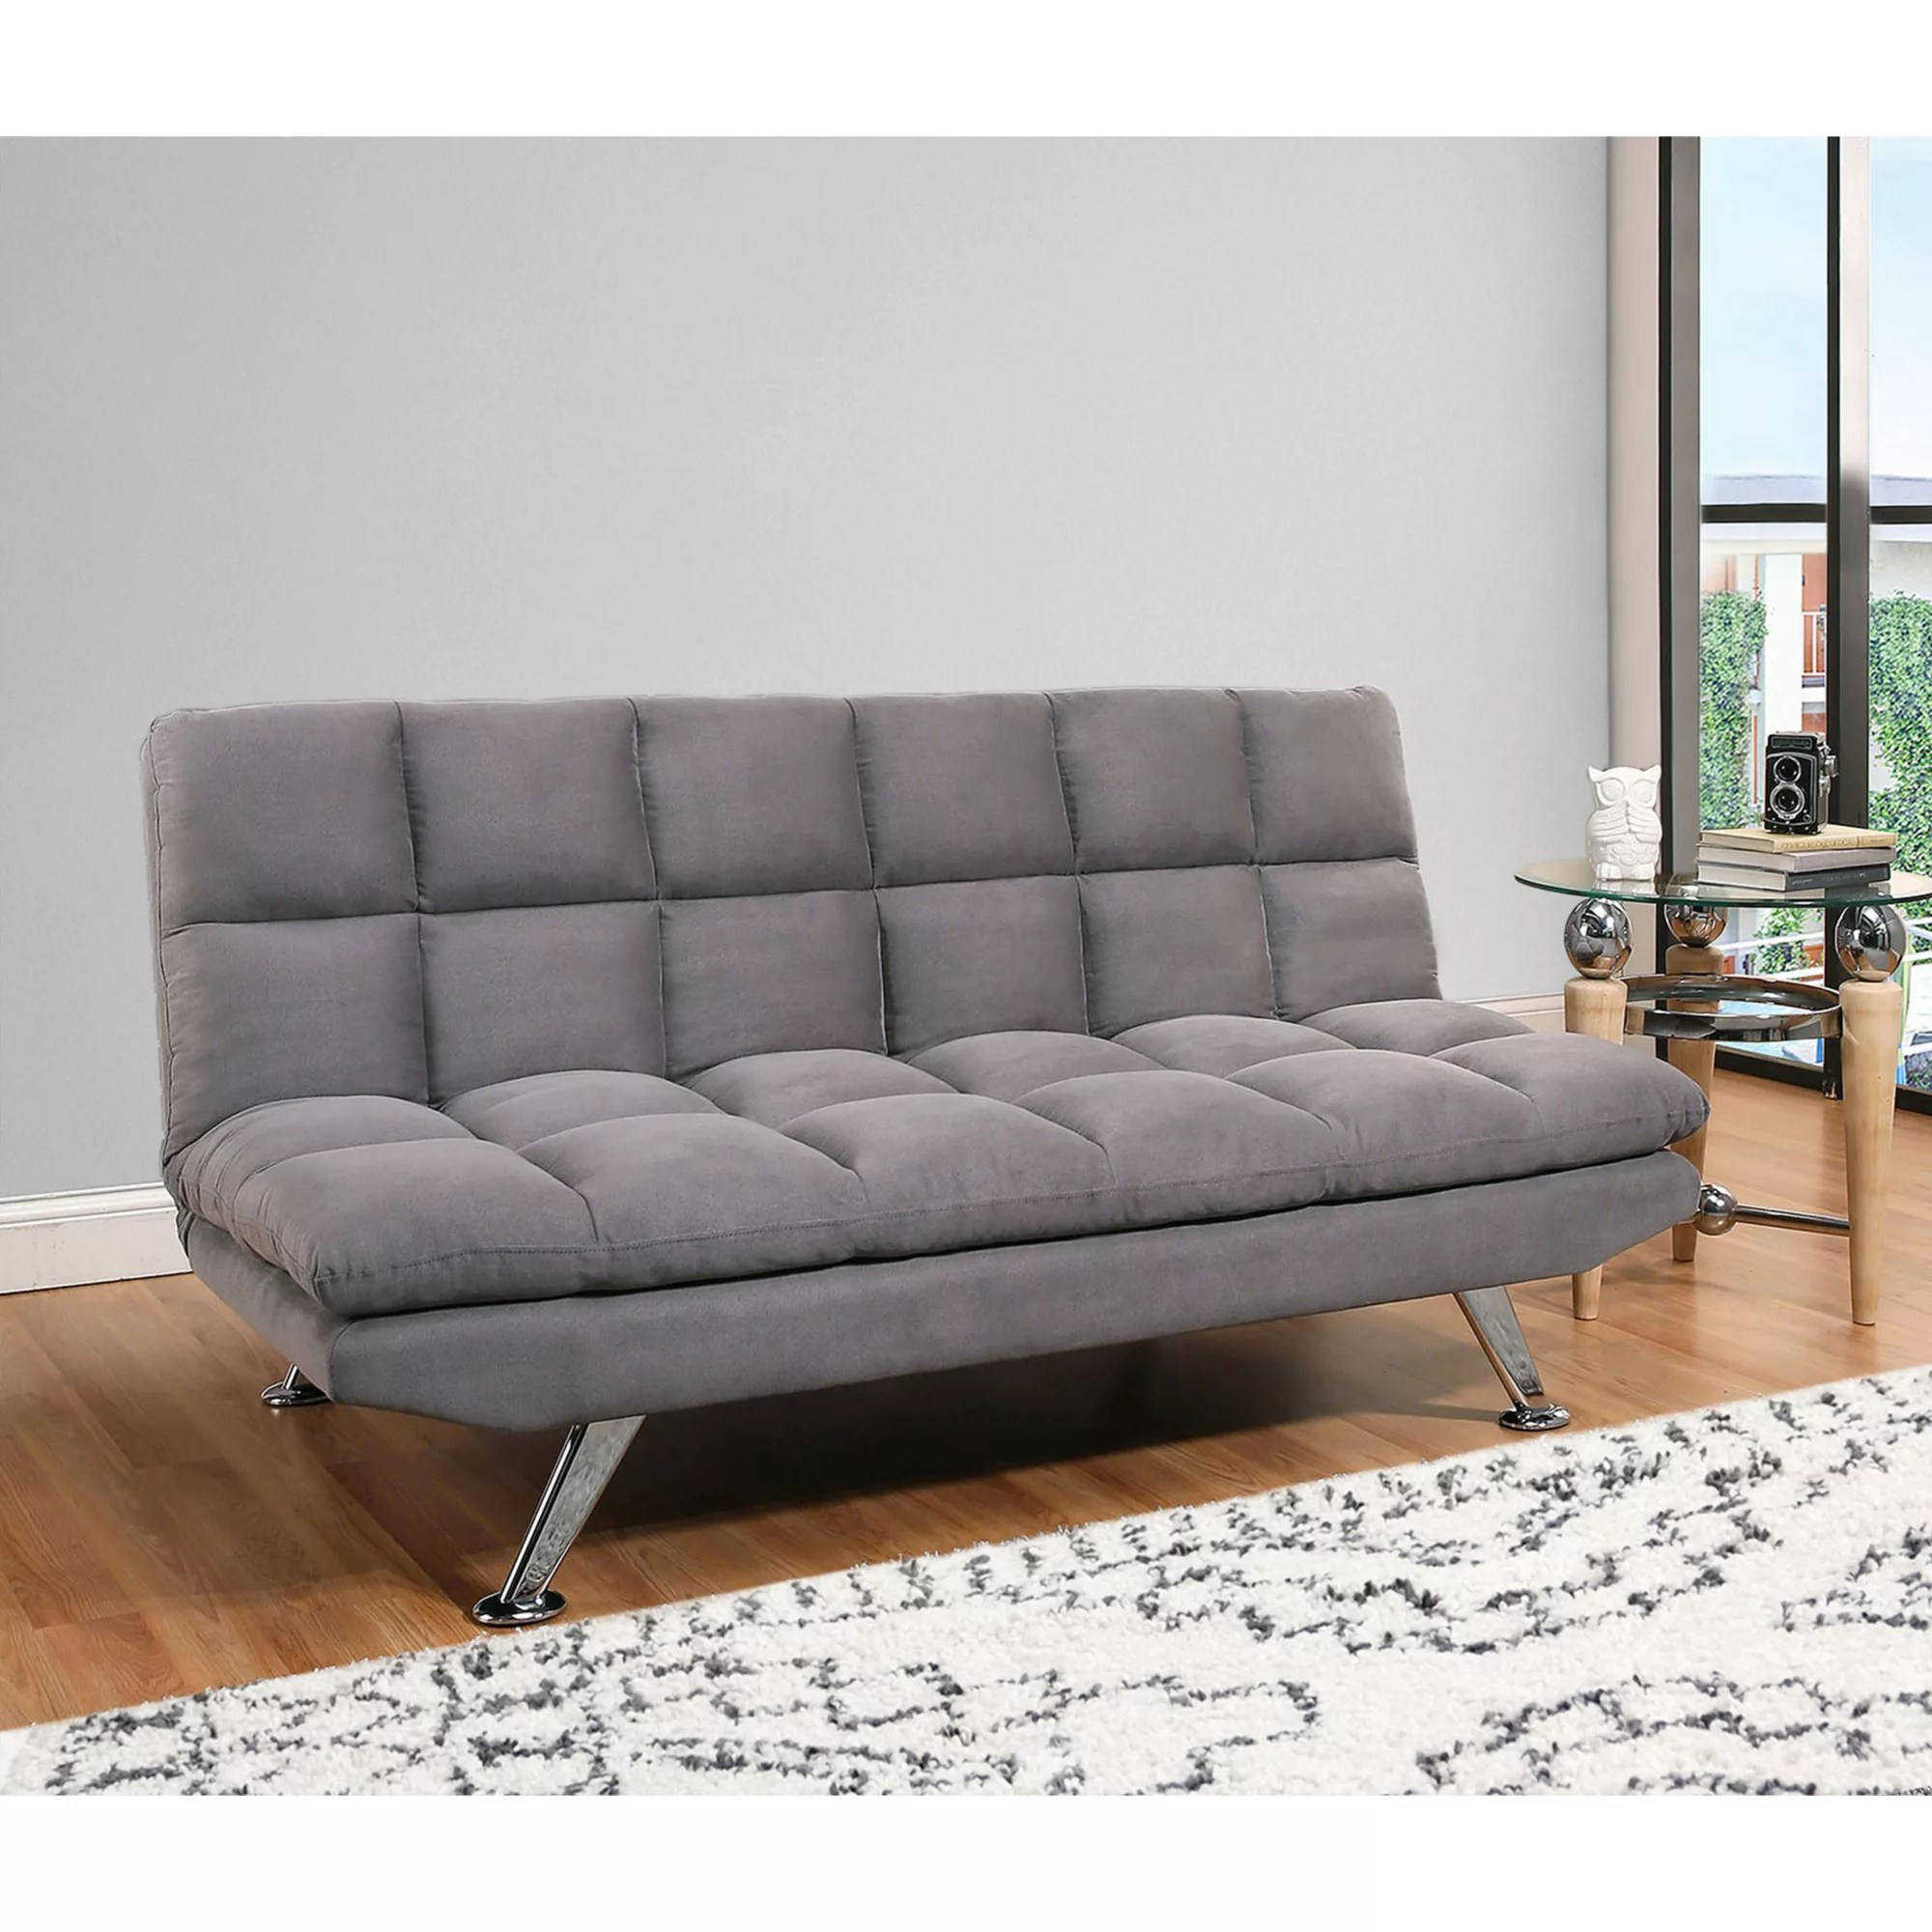 Abbyson Hamilton Fabric Sofa Bed - Gray - BJs WholeSale Club